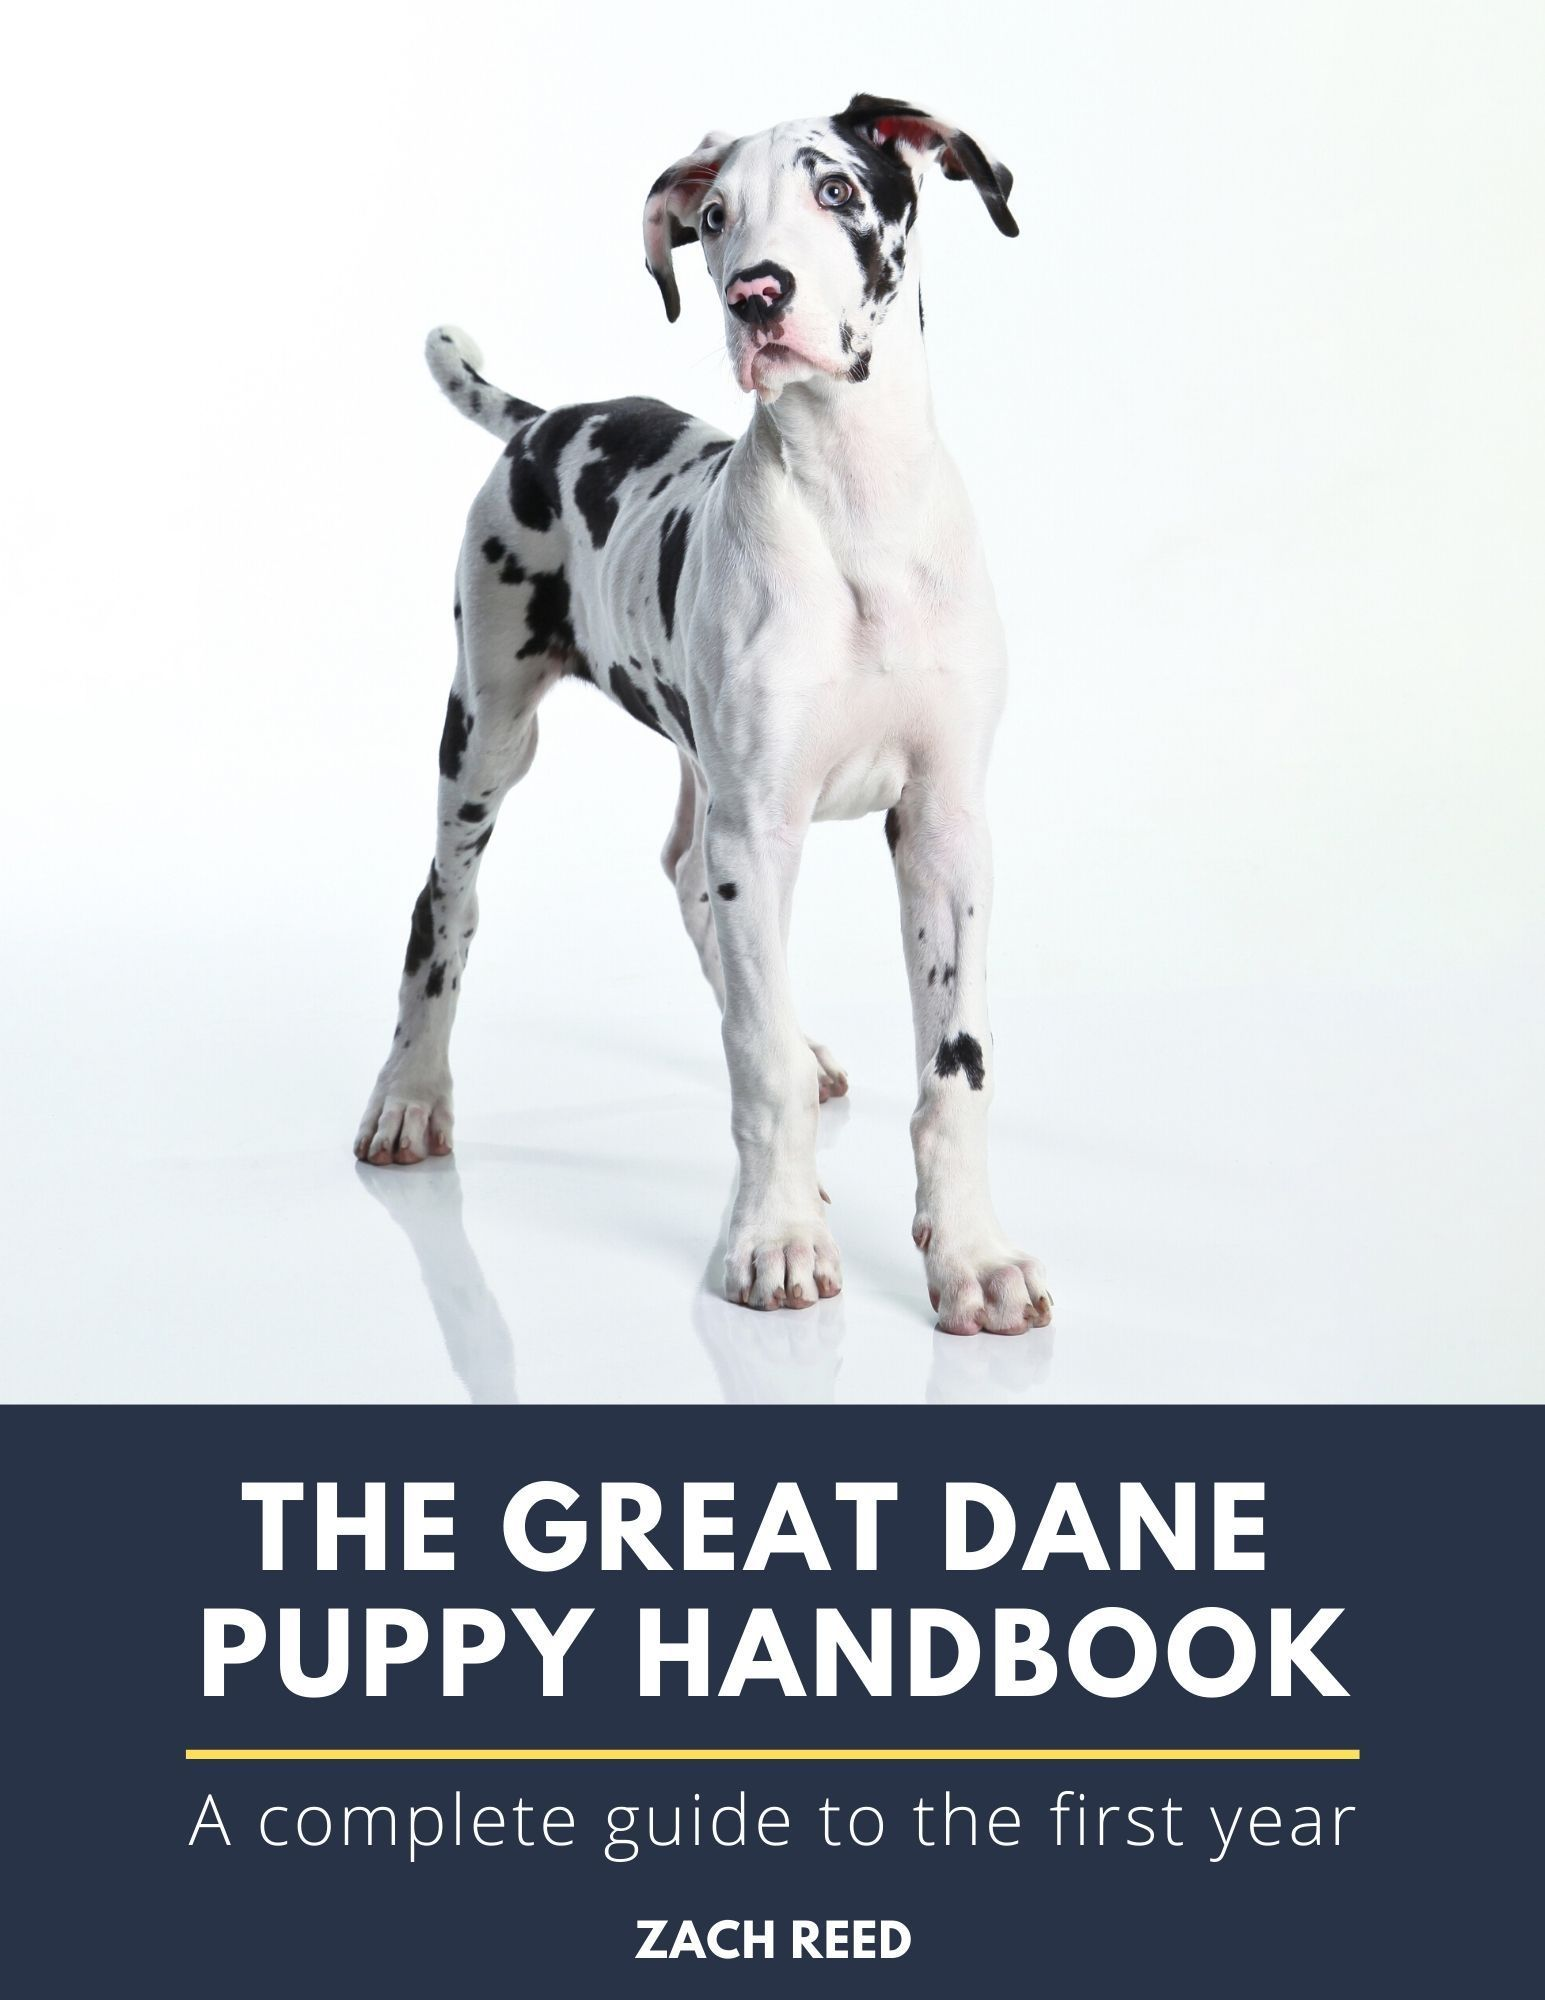 The Ultimate Guide To Great Dane Puppy Care This Book Covers